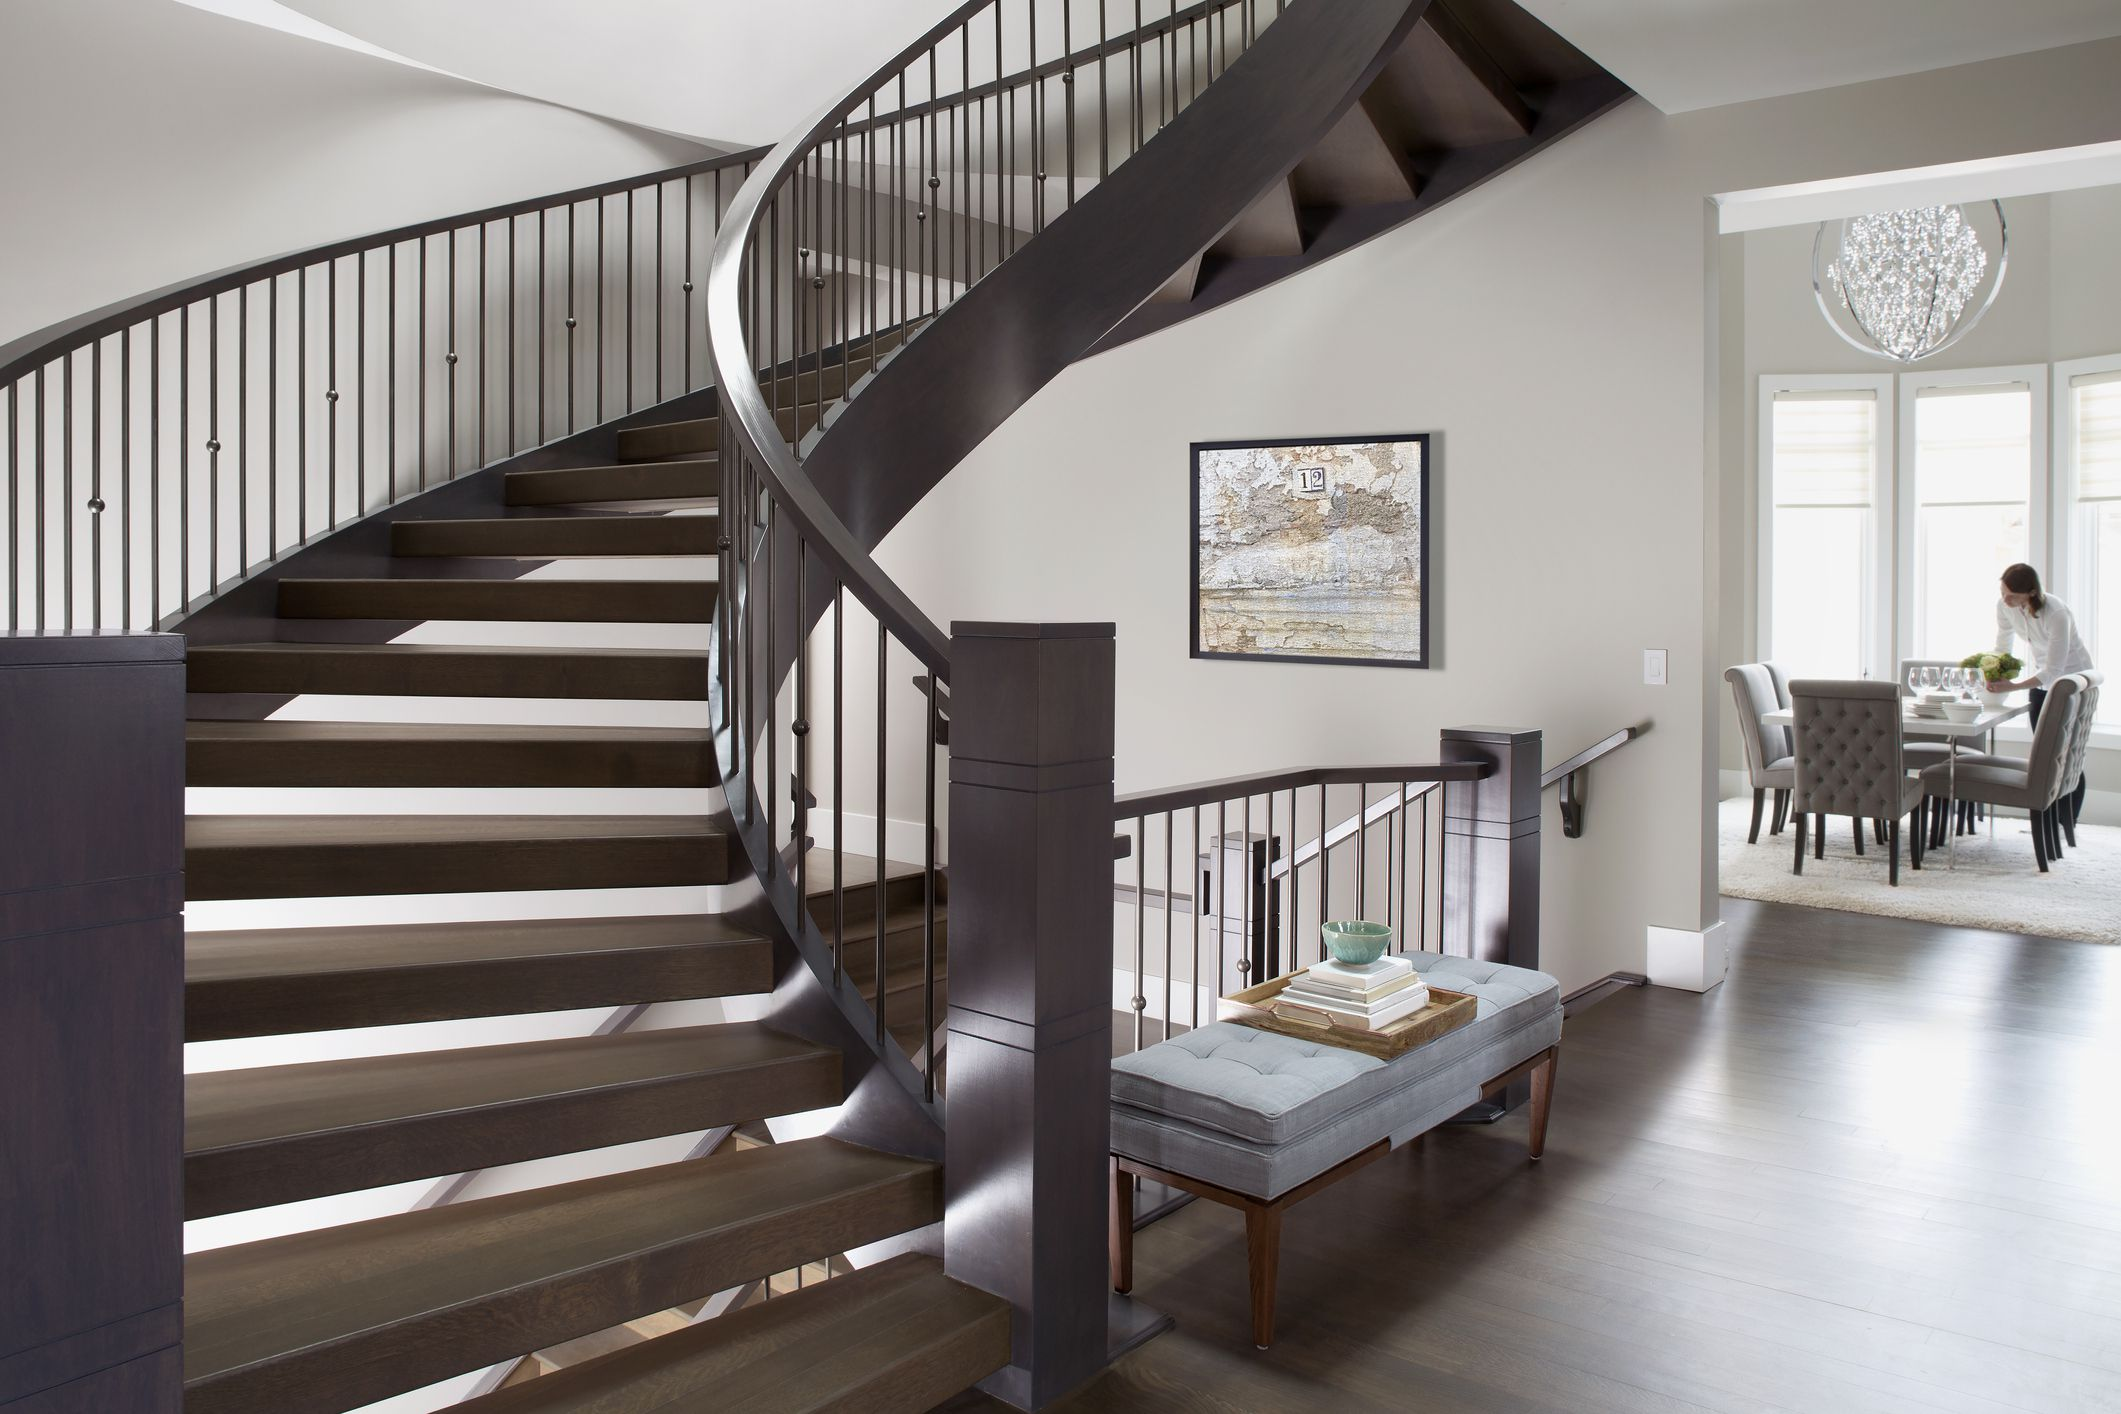 interior stair railing designs ideas and decors most.htm add metal balusters  railings  or posts to your stairs  add metal balusters  railings  or posts